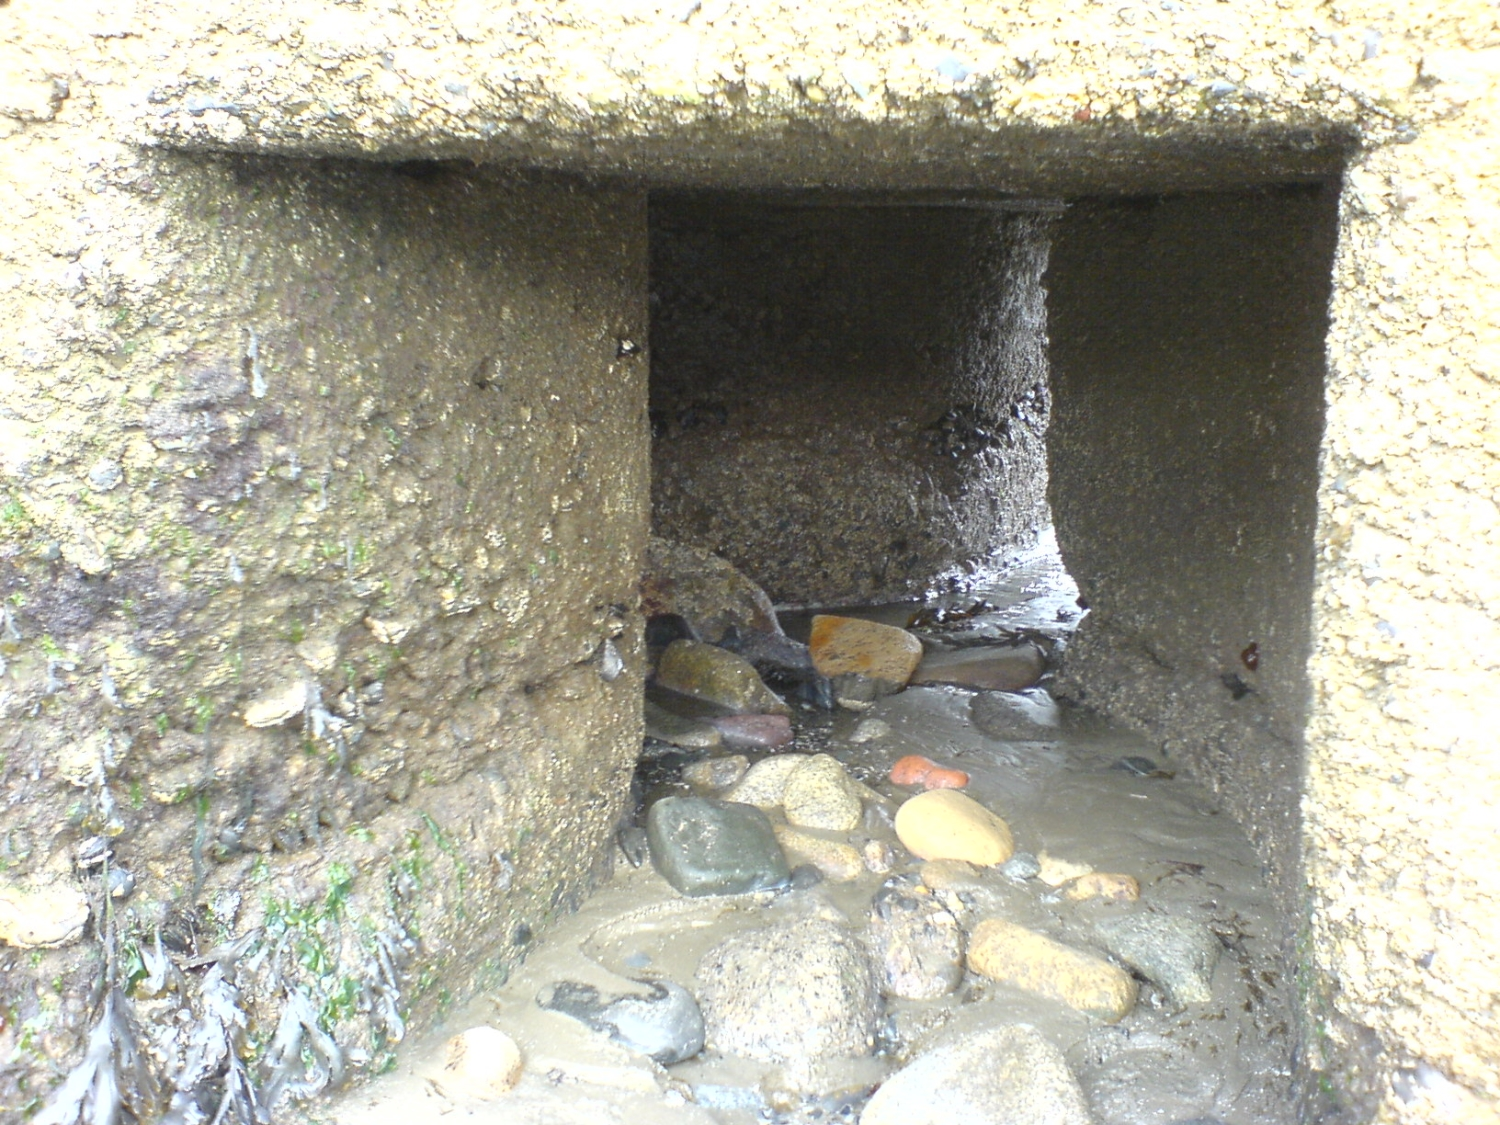 2No. exits from old outfall chamber